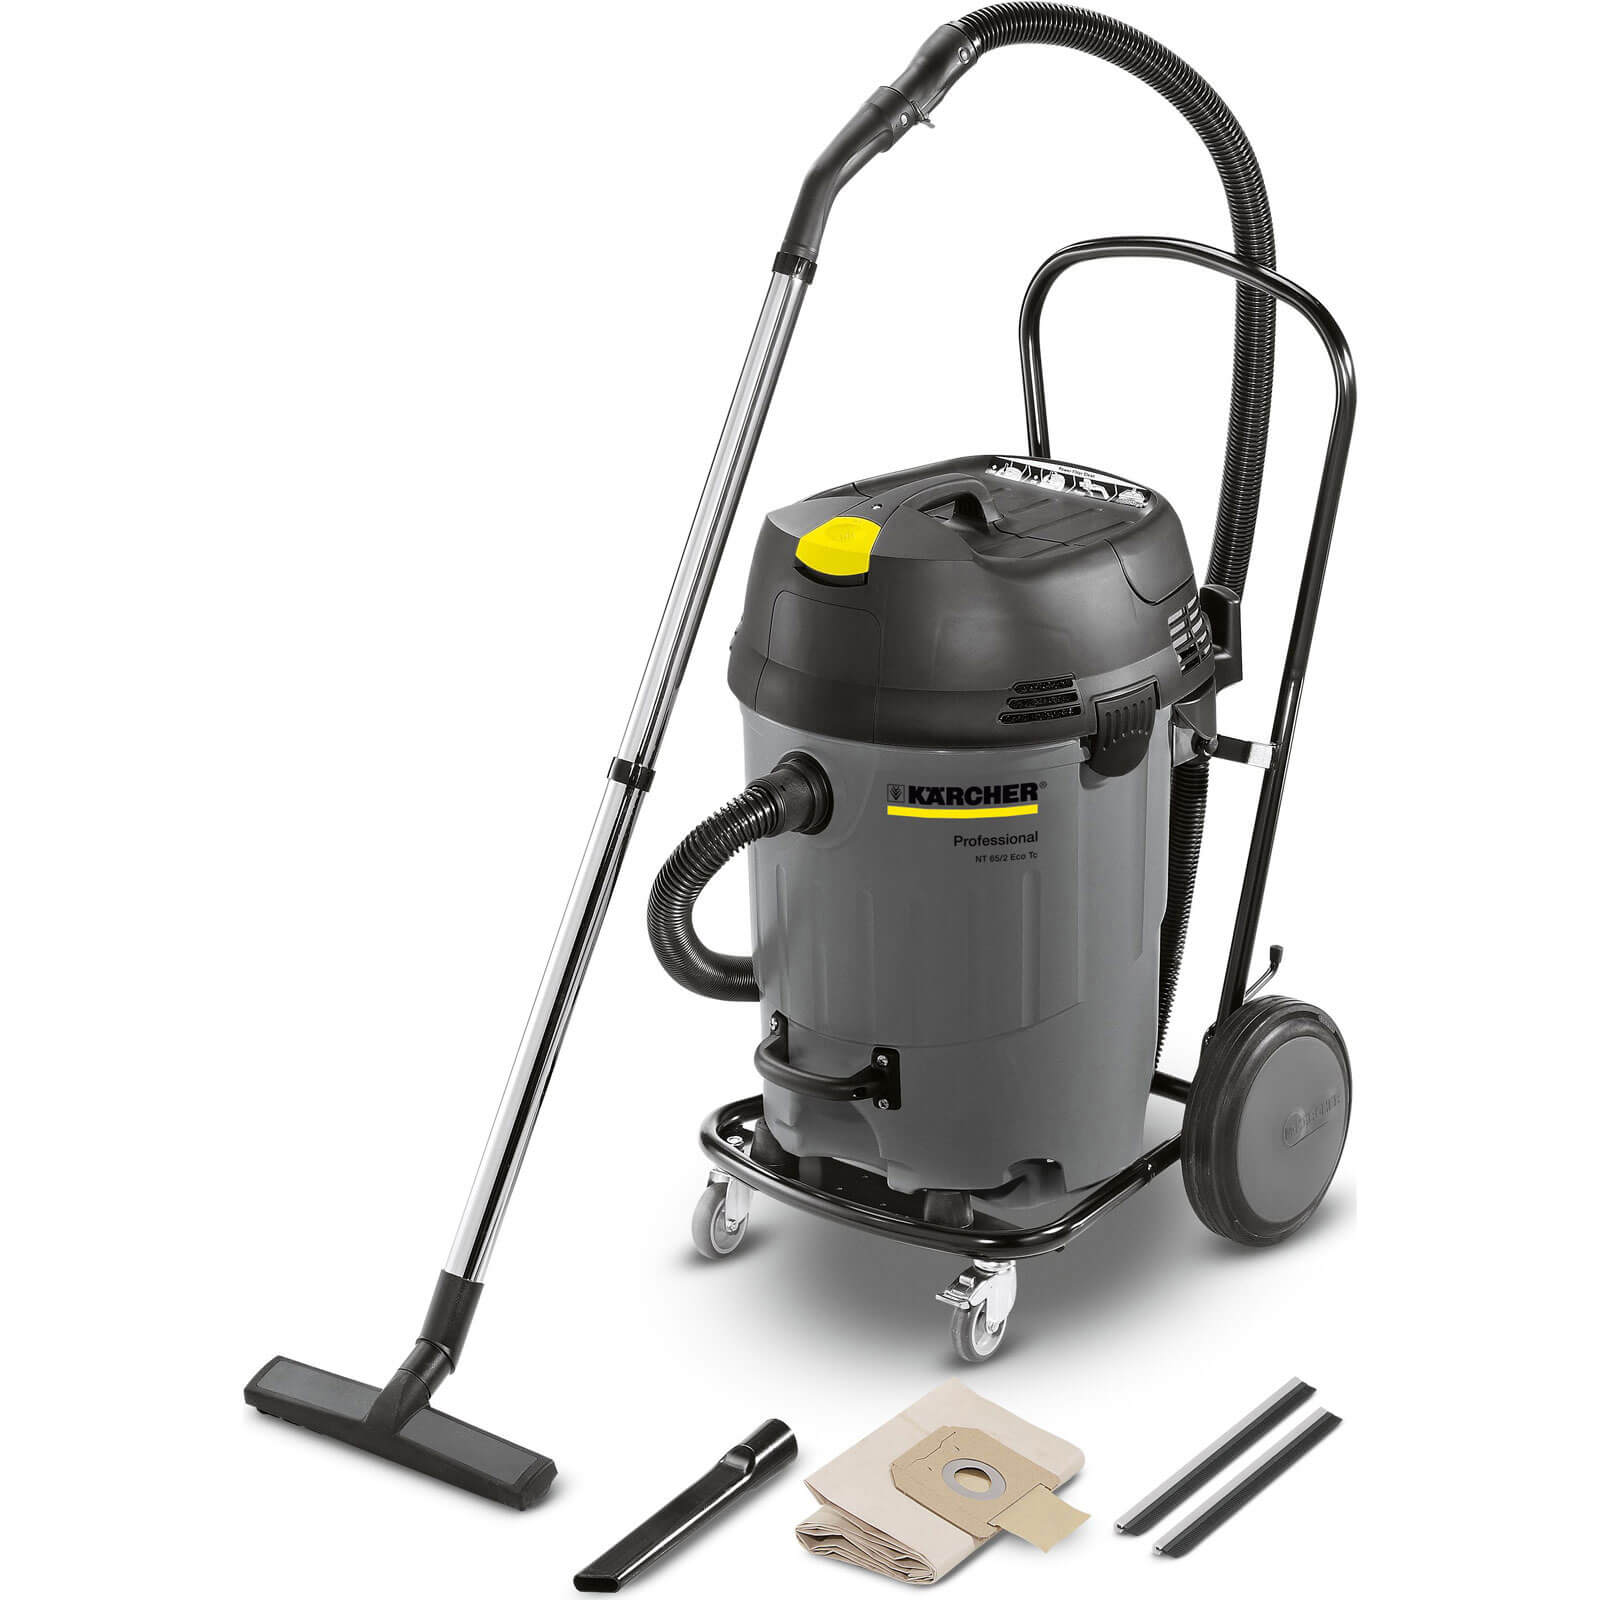 Image of Karcher NT 65/2 AP Professional Wet and Dry Vacuum Cleaner 240v